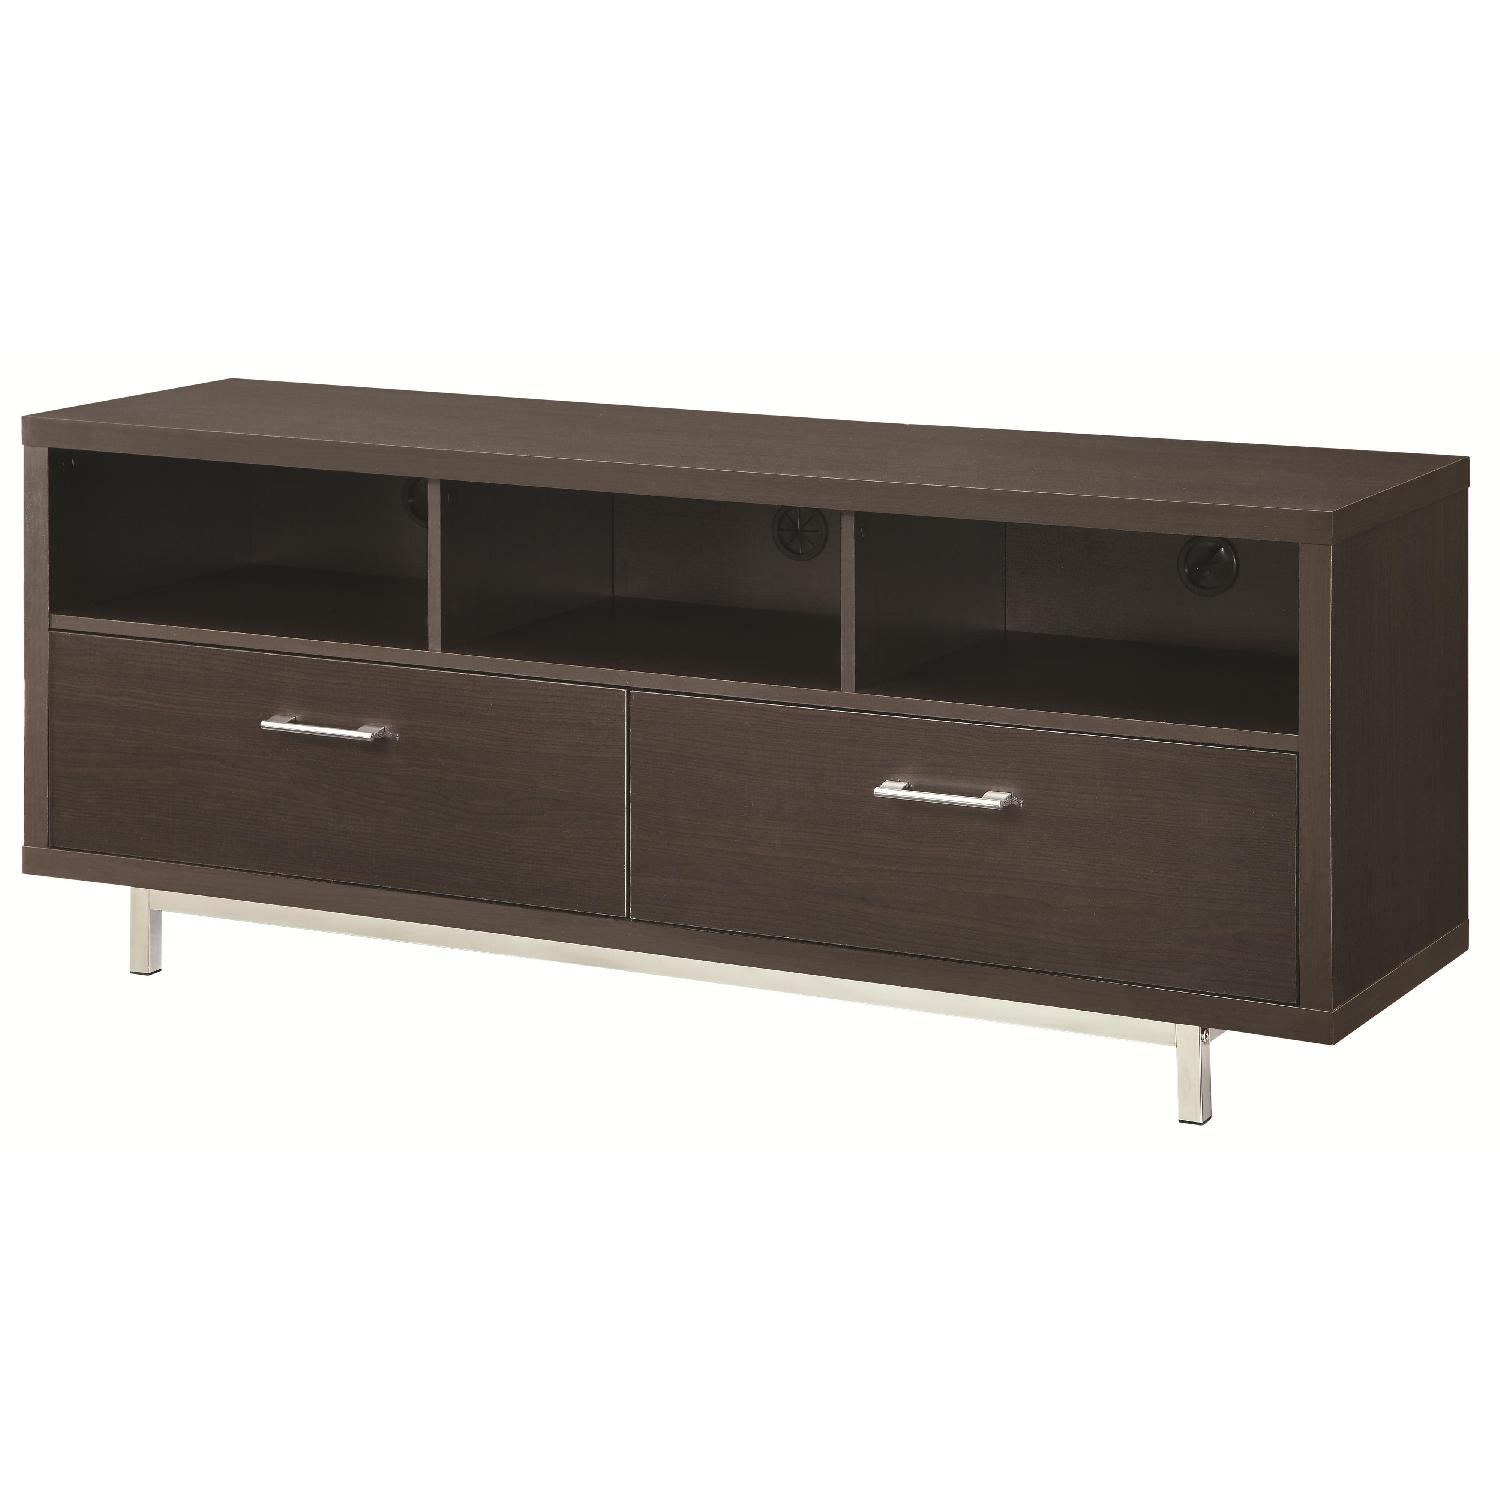 Modern TV Stand w/ 3 Media Shelves & 2 Utility Drawers w/ Si - image-0